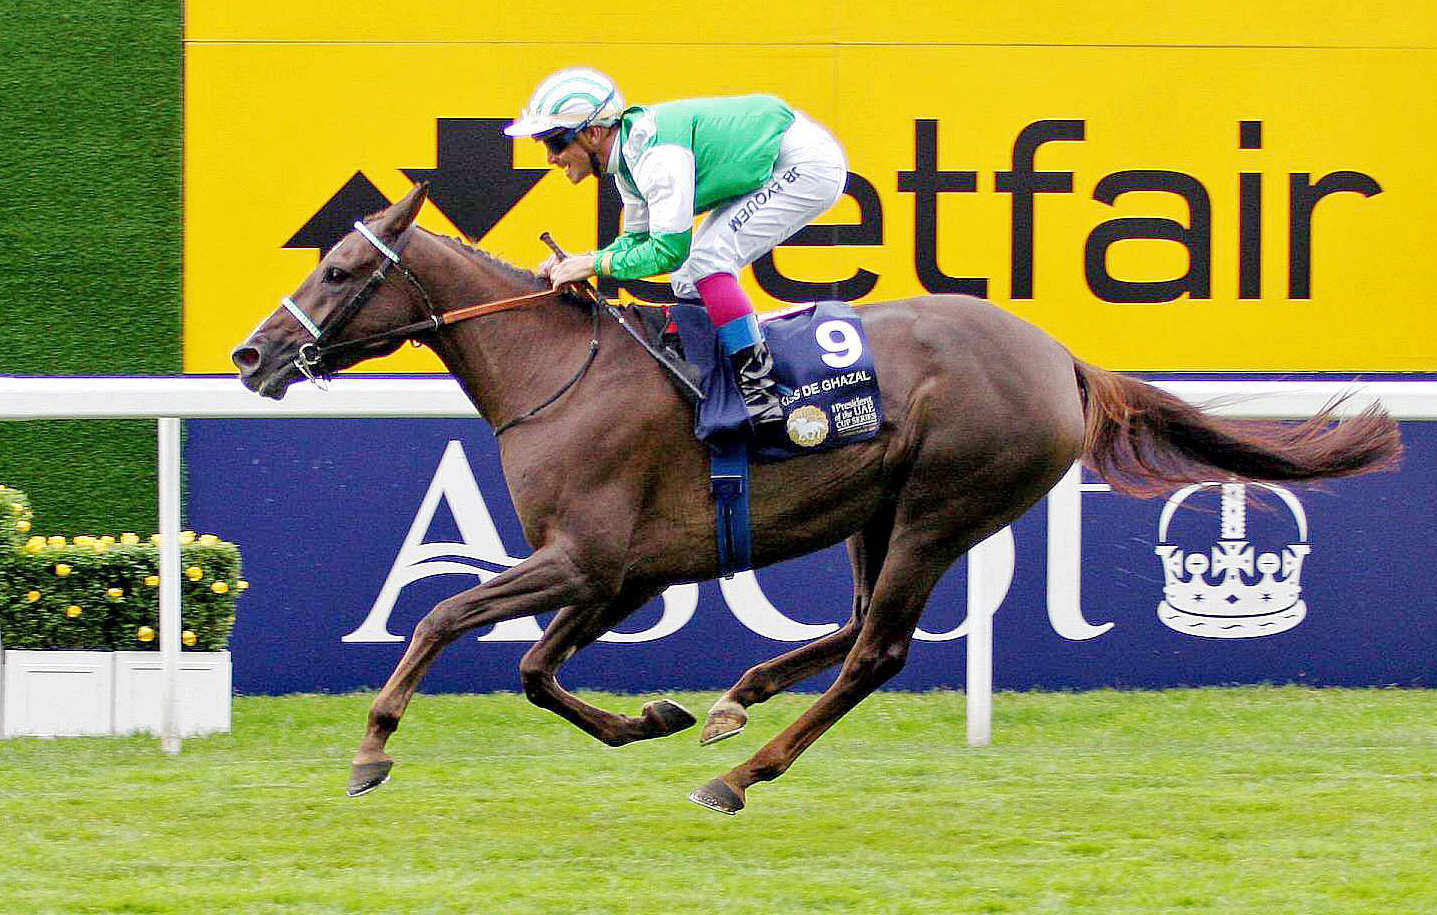 ARABIAN RACING RETURNS TO ASCOT IN 2020 WITH A NEW RACE SPONSORED BY SHADWELL STUD